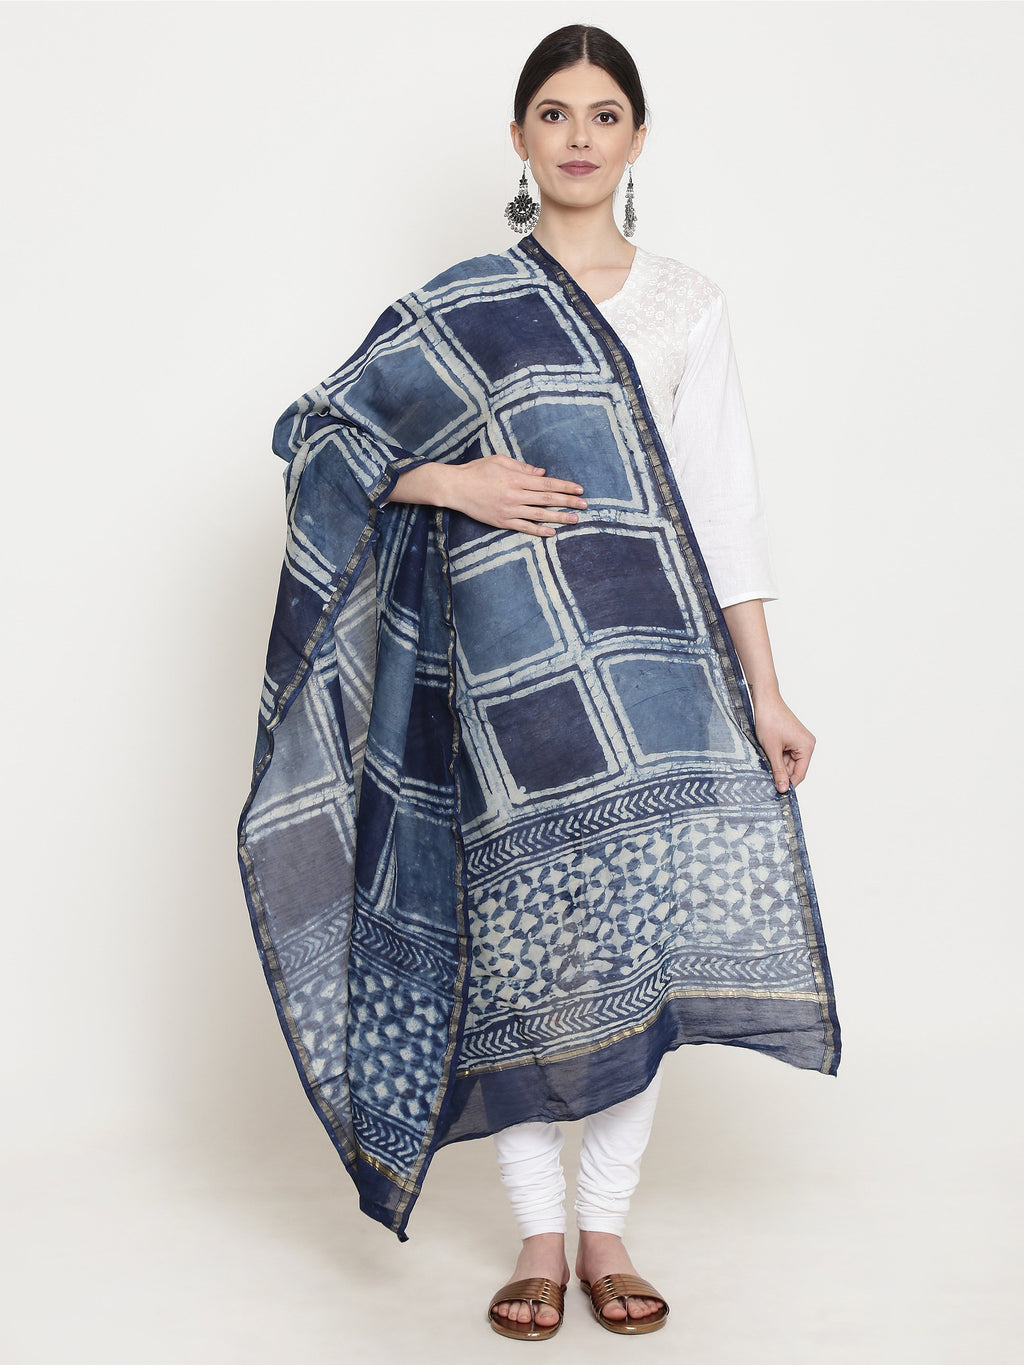 Exotic Chanderi Silk Handmade Dupatta-Dupatta-Kalakari India-BHKPDP0008-Chanderi, Dupatta, Geographical Indication, Hand Blocks, Hand Crafted, Heritage Prints, Silk, Sustainable Fabrics-[Linen,Ethnic,wear,Fashionista,Handloom,Handicraft,Indigo,blockprint,block,print,Cotton,Chanderi,Blue, latest,classy,party,bollywood,trendy,summer,style,traditional,formal,elegant,unique,style,hand,block,print, dabu,booti,gift,present,glamorous,affordable,collectible,Sari,Saree,printed, holi, Diwali, birthday, an